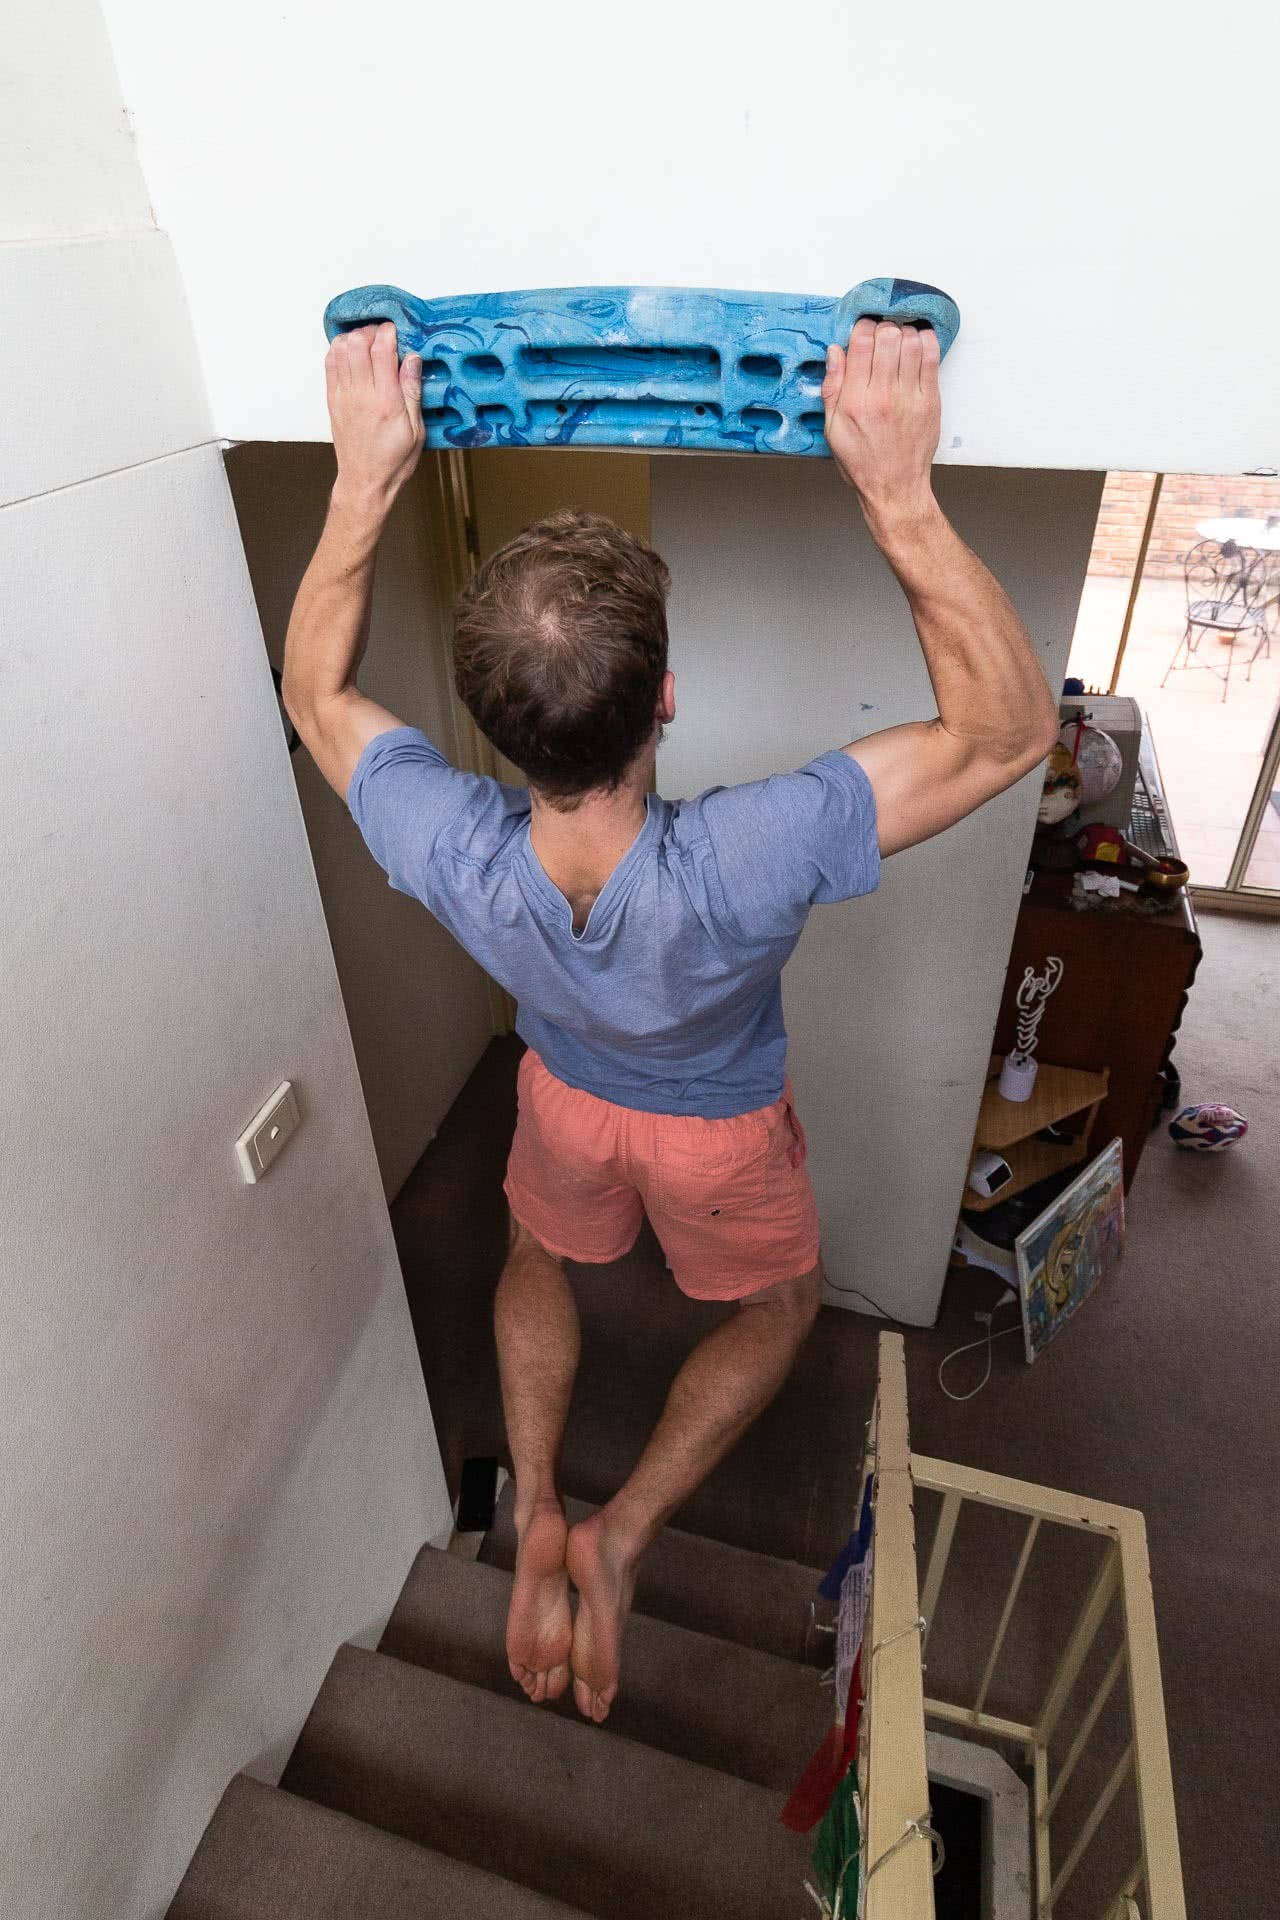 Eoin Coleman hangboard, adventures in the home, photo by Tim ashelford, rock climbing, training